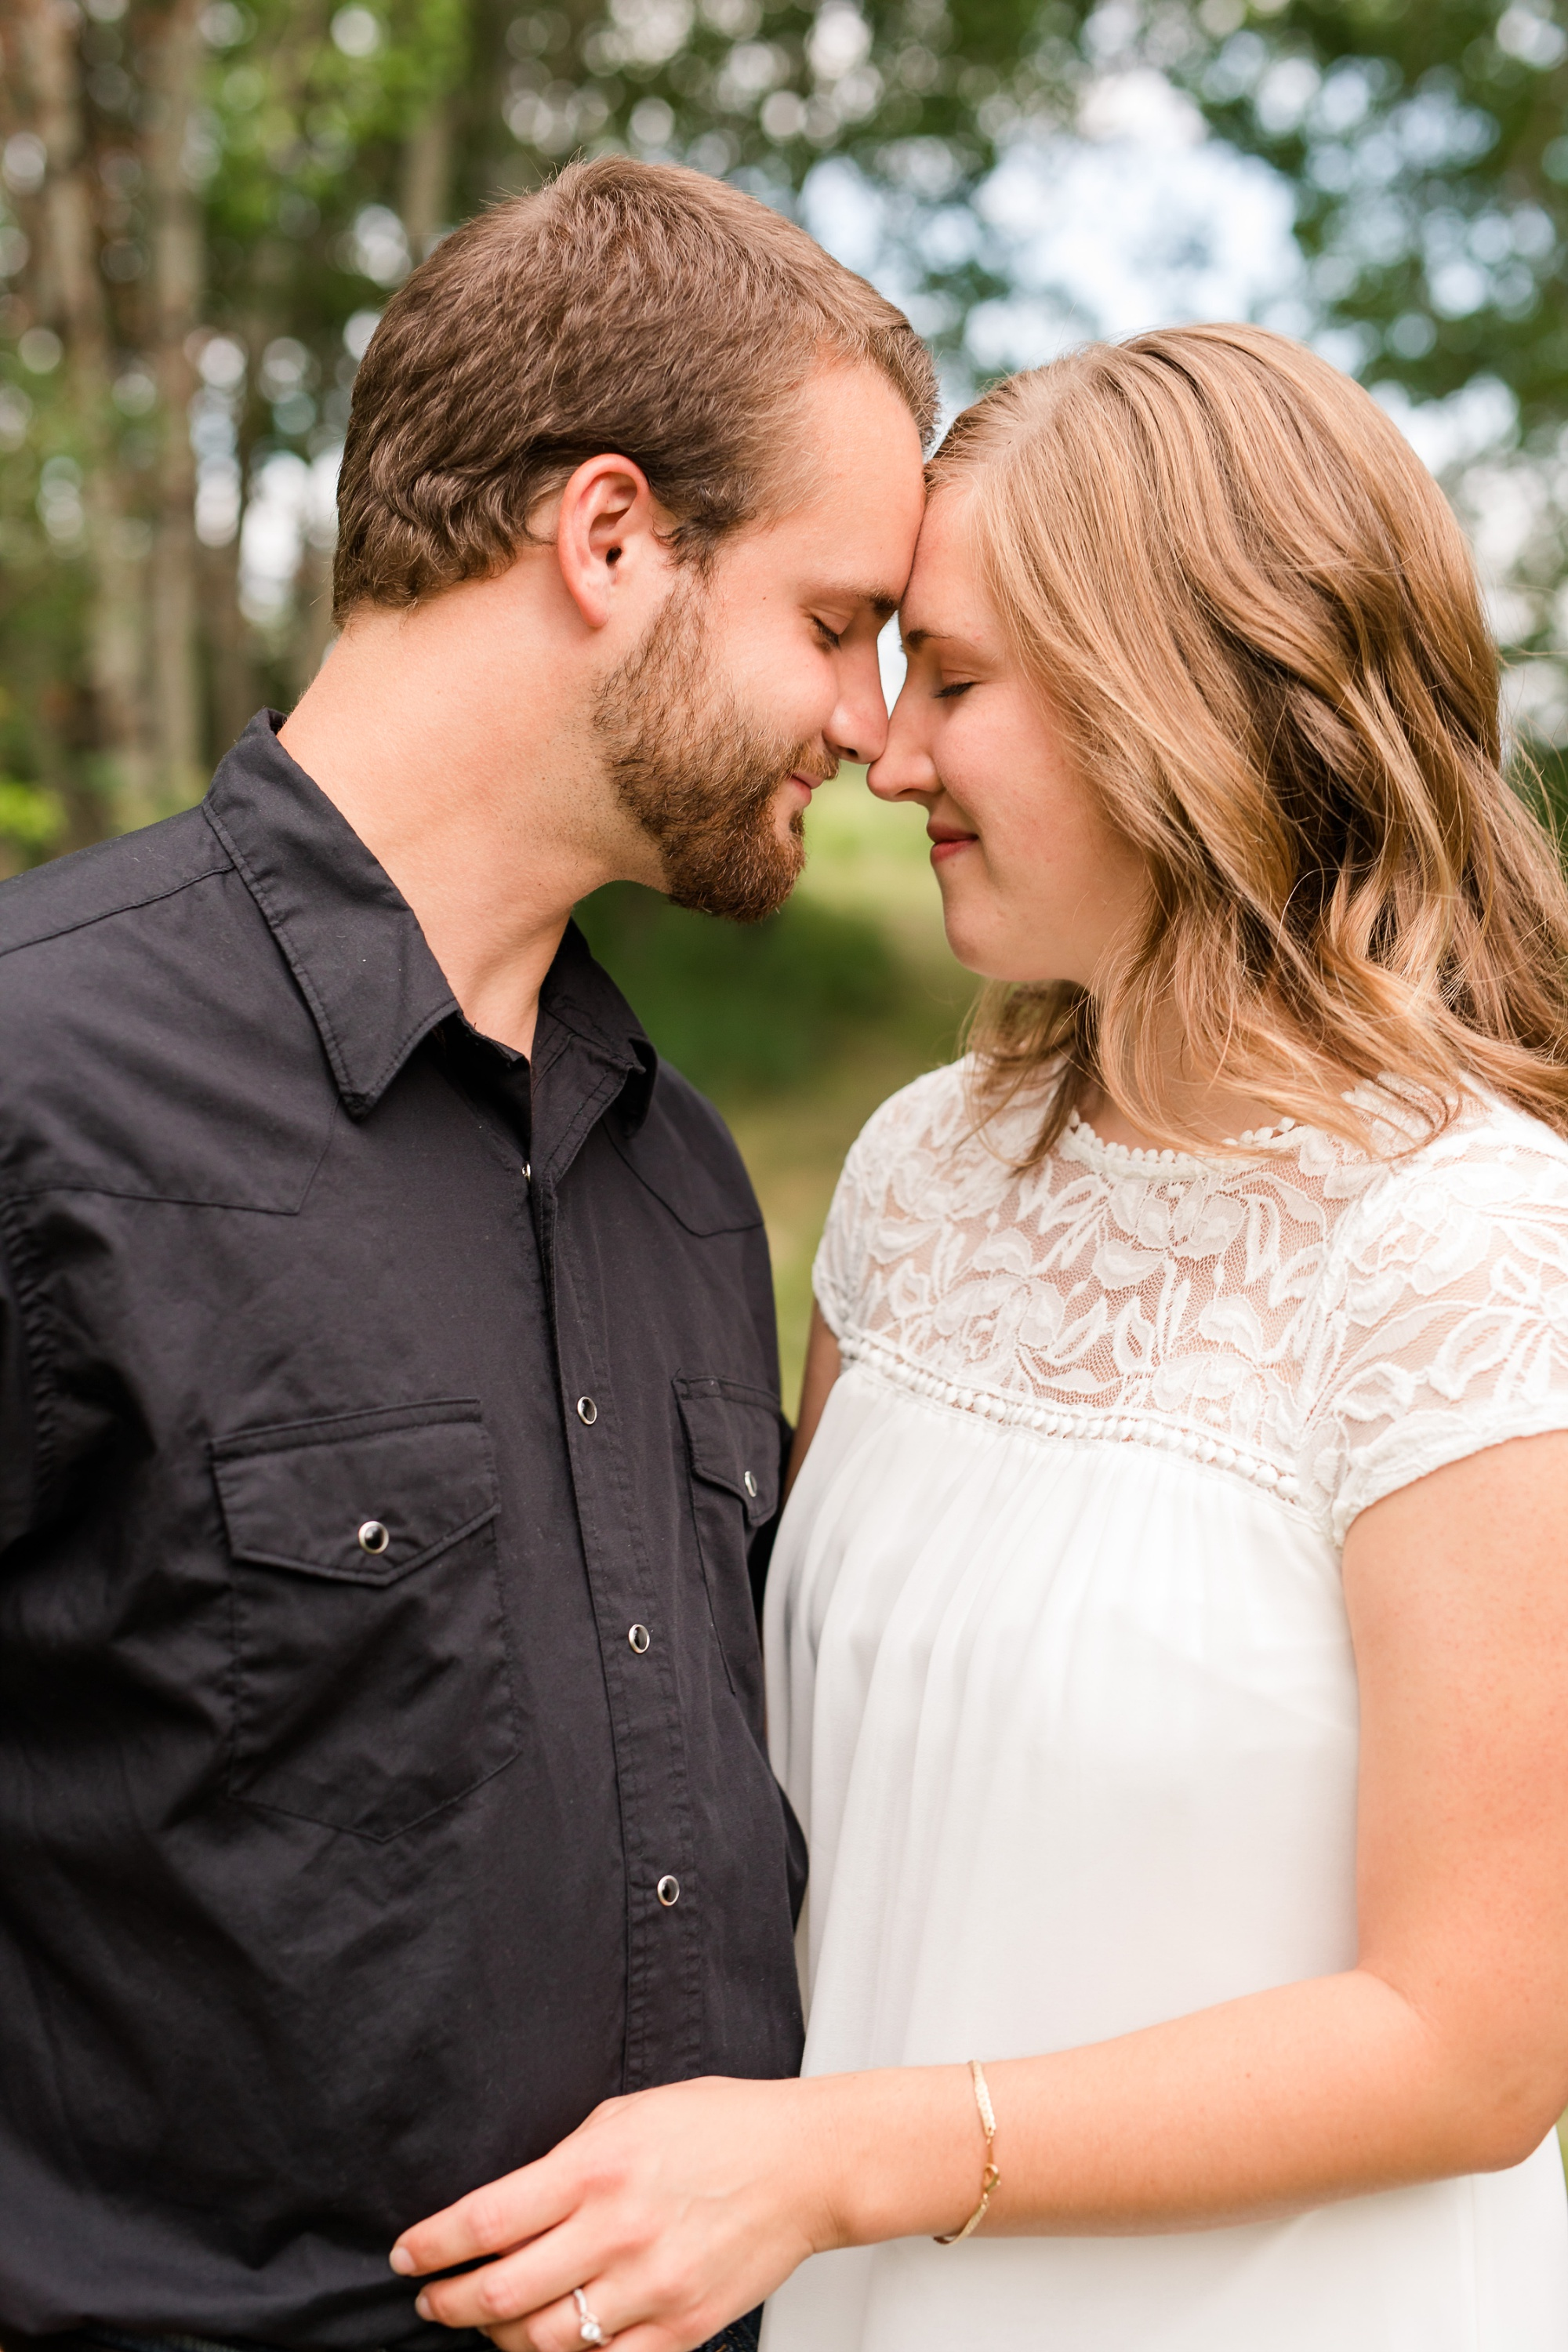 AmberLangerudPhotography_Countryside Engagement Session in Minnesota_3084.jpg